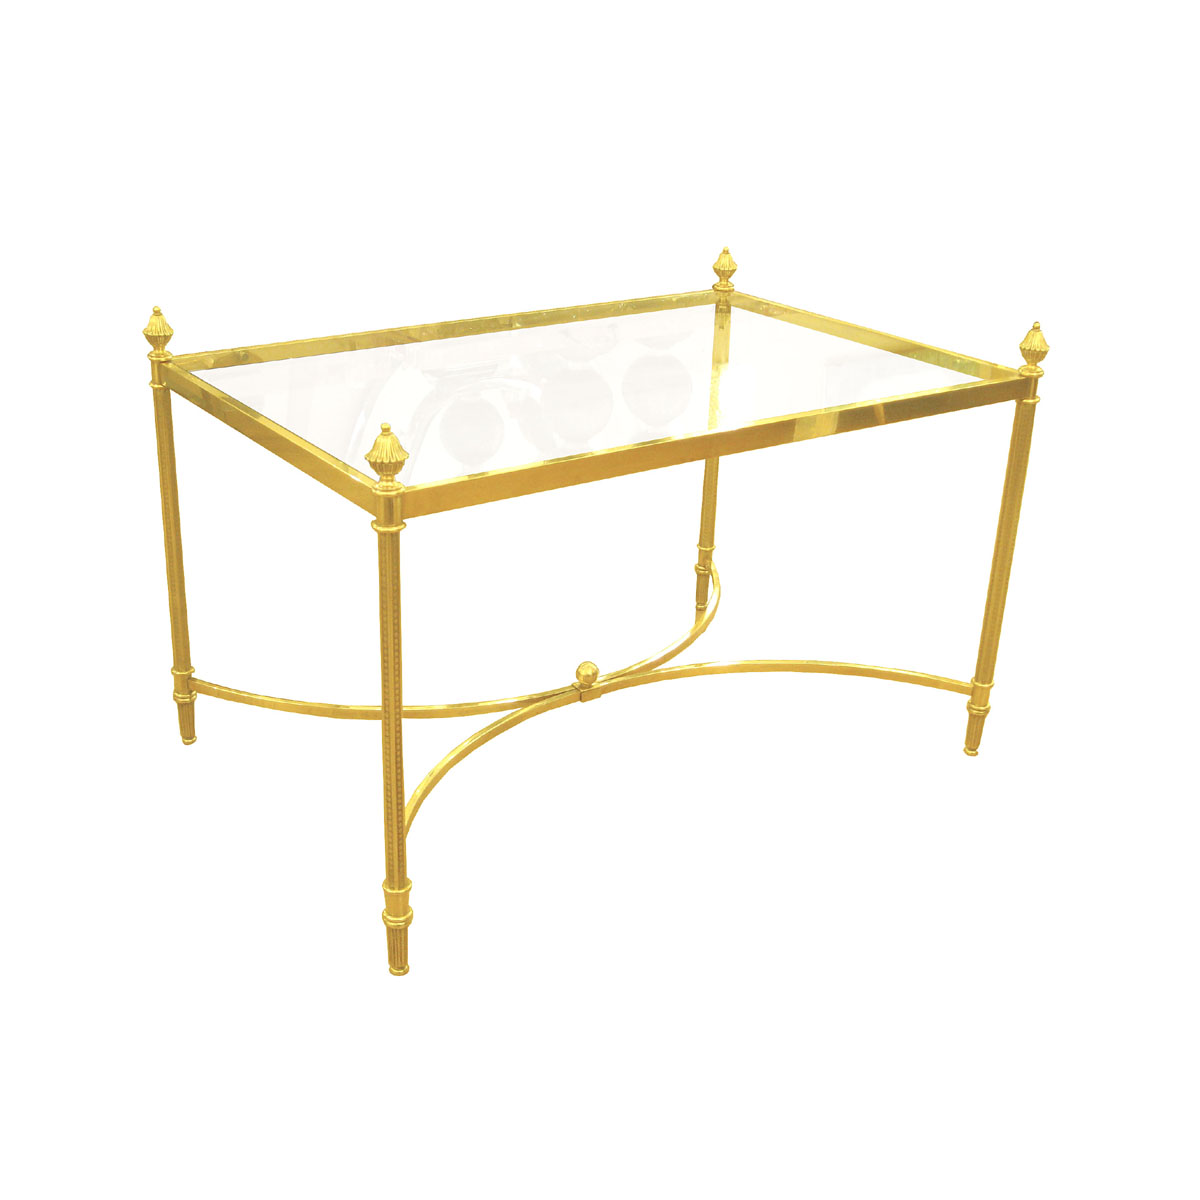 Brass and glass side table with acorn finials Side amp End  : 211F5456 from www.johnsalibello.com size 1200 x 1200 jpeg 98kB